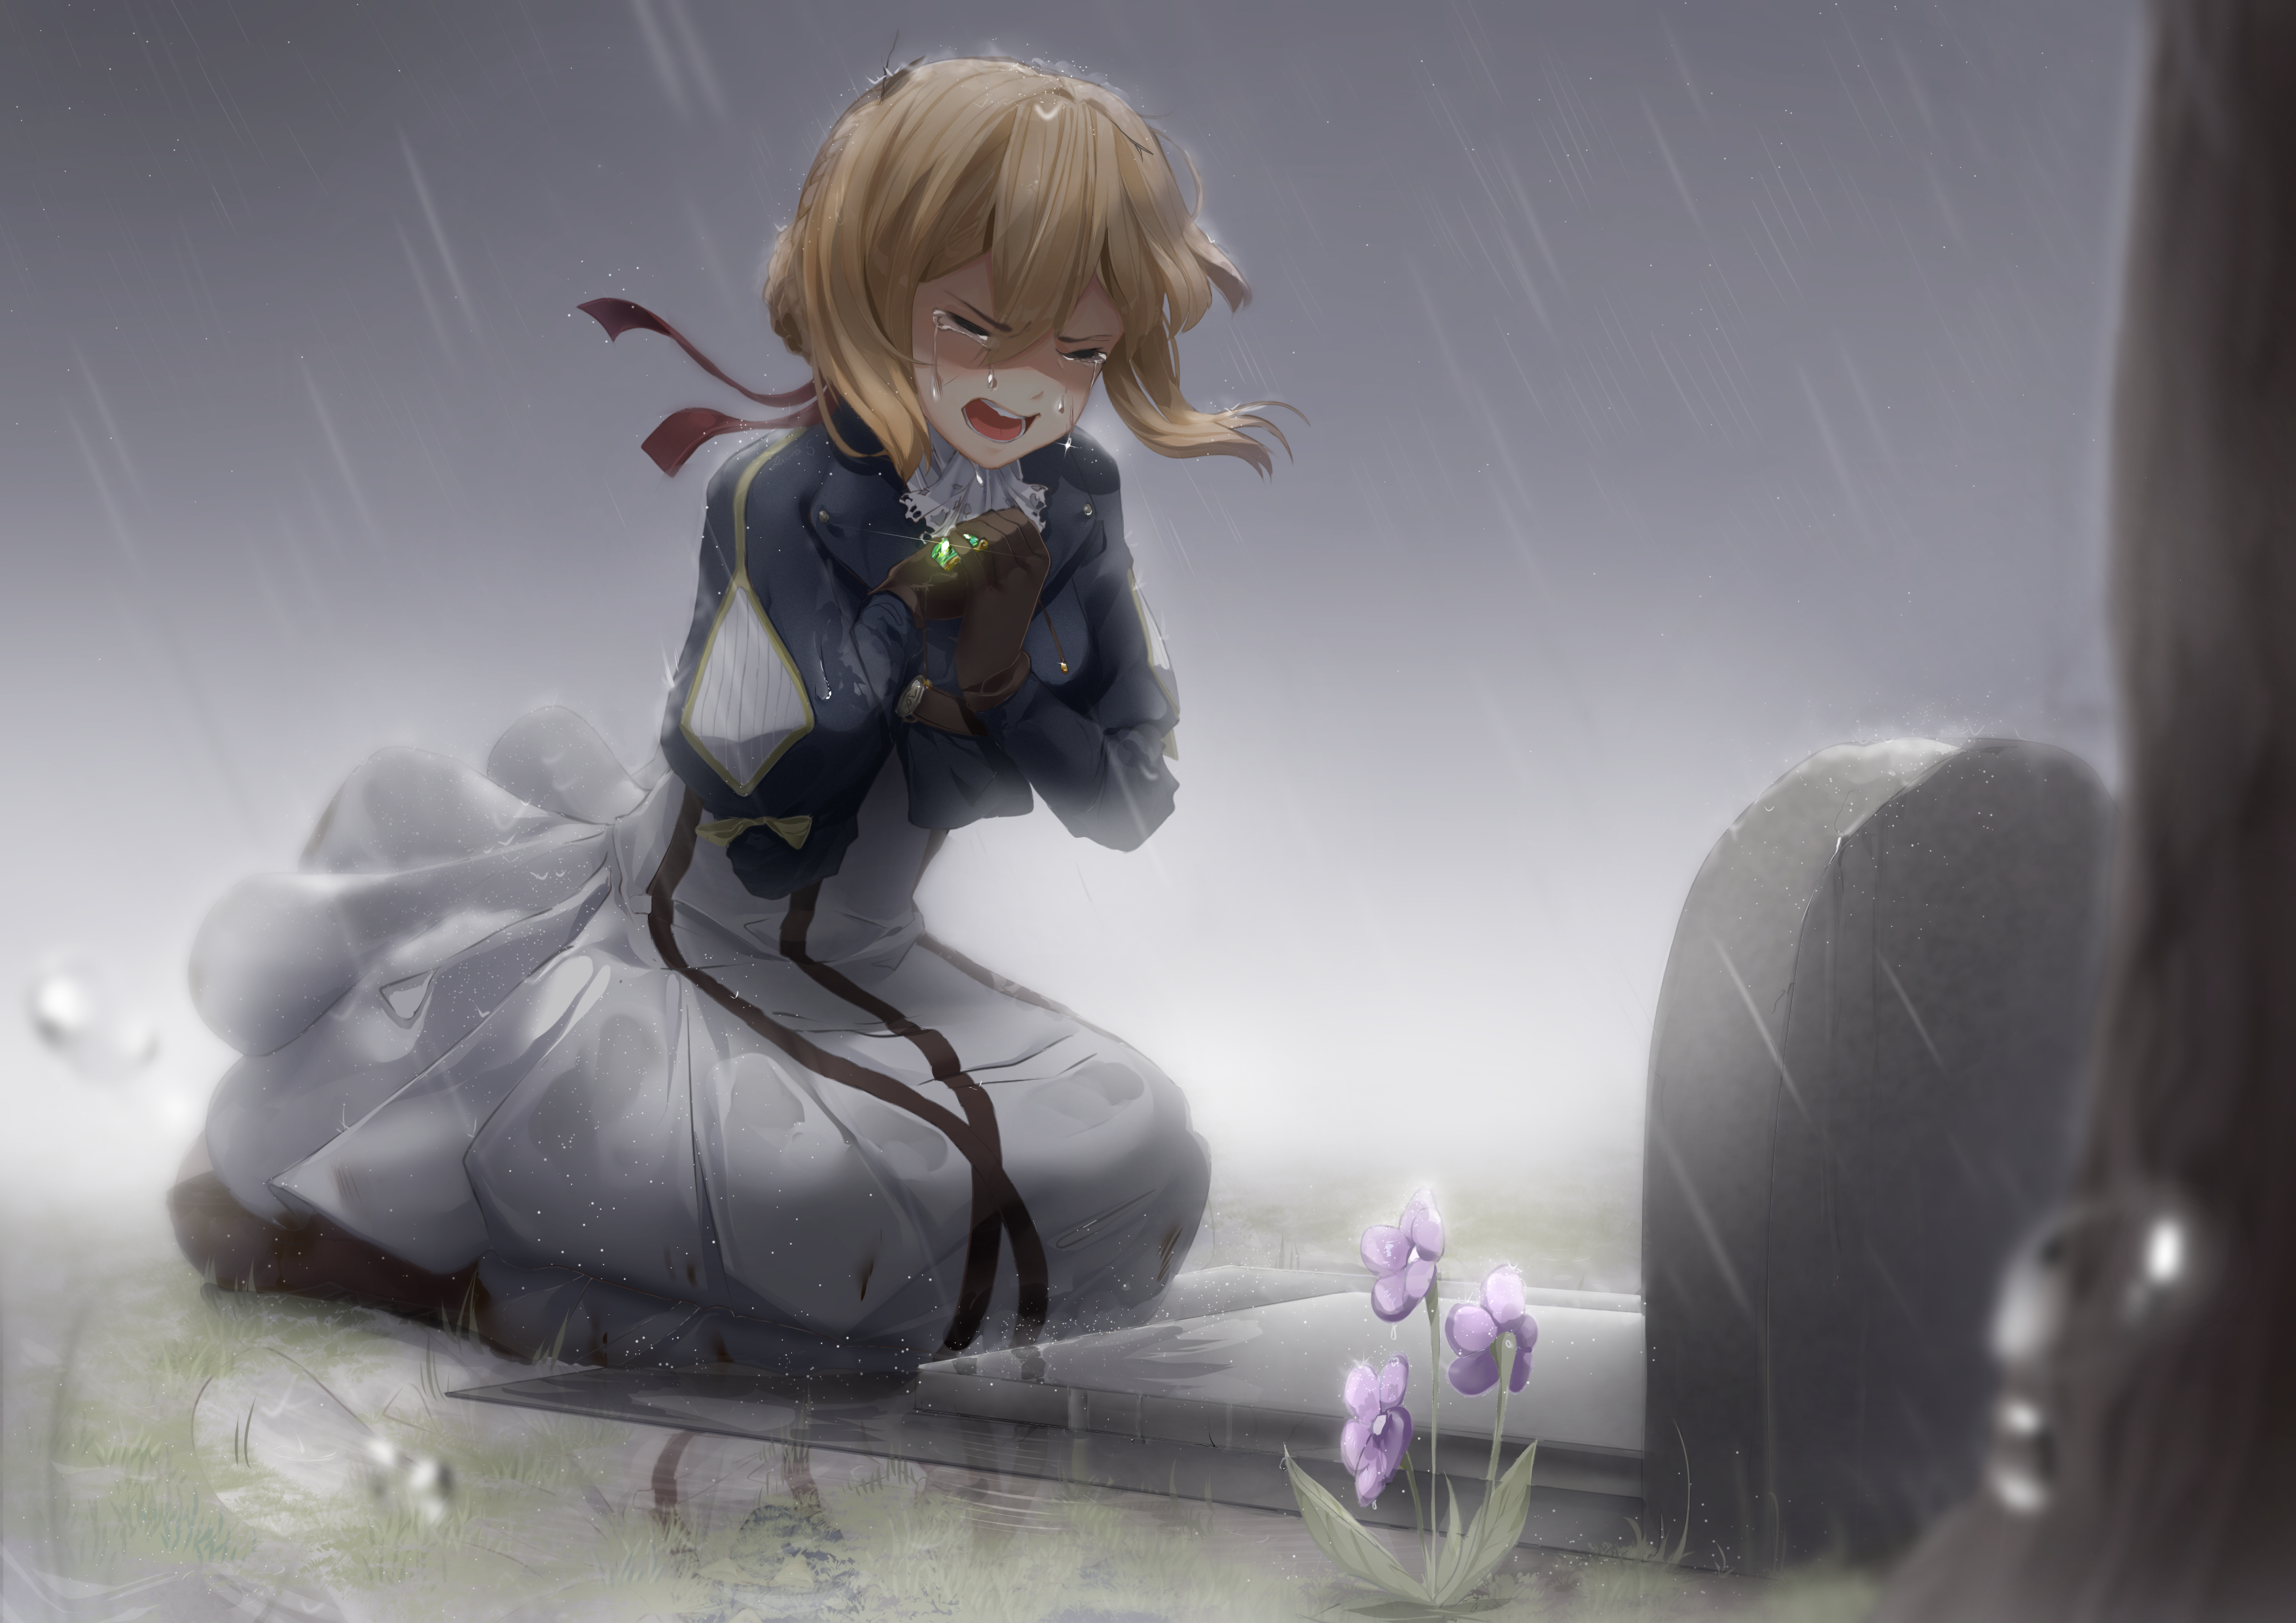 Violet Evergarden HD Wallpaper | Background Image | 3508x2480 | ID:909554 - Wallpaper Abyss